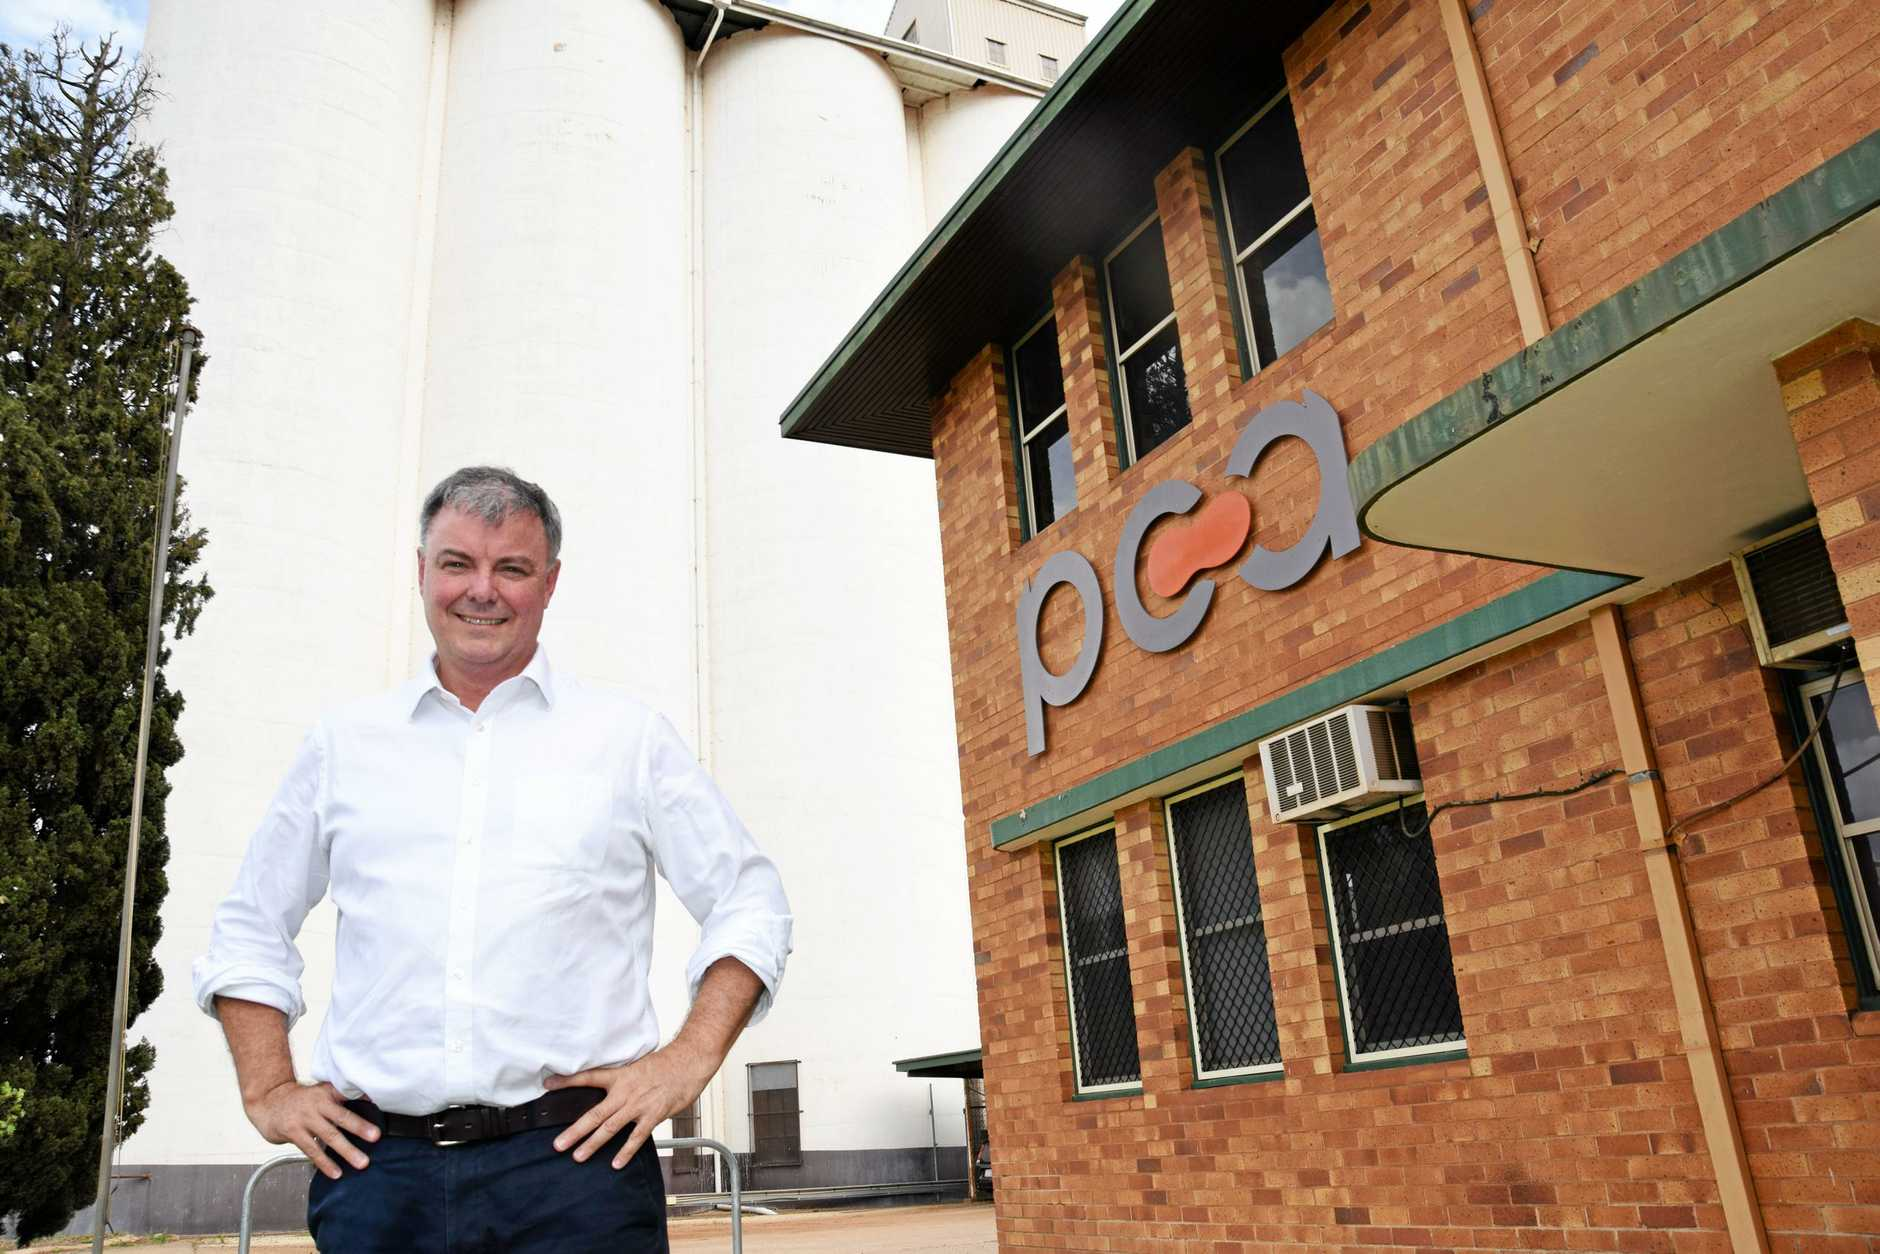 PCA CEO John Howard said the proposed Bega takeover of PCA would provide certainty.